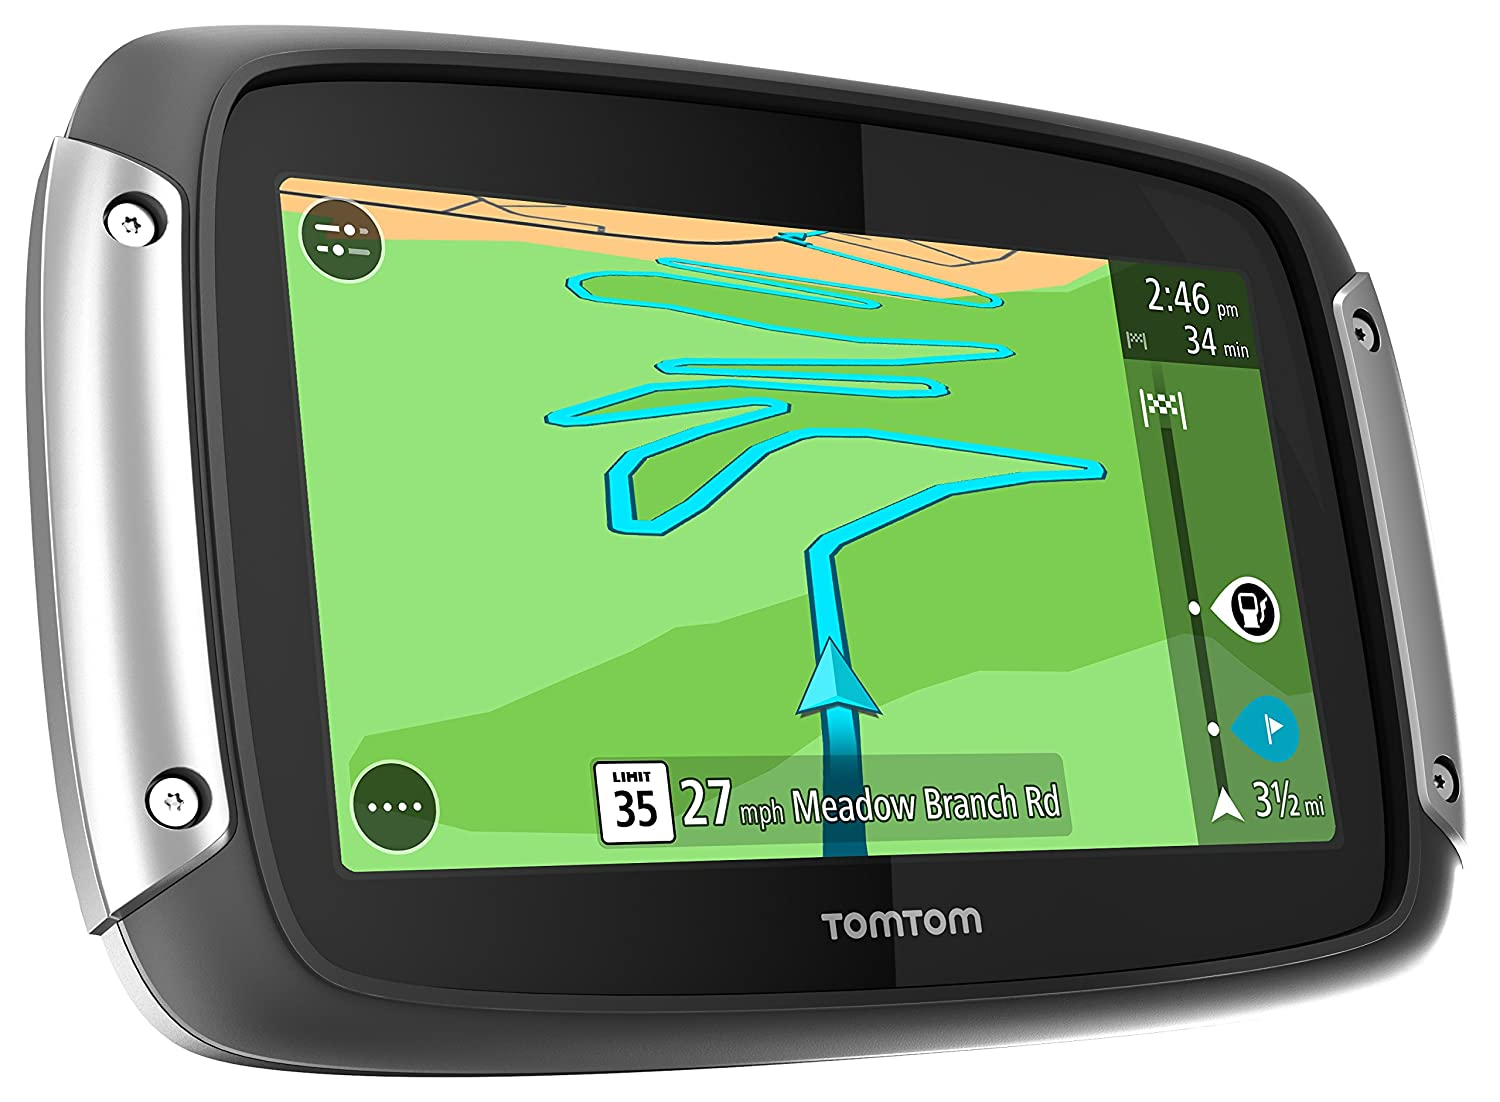 Tomtom Netherlands Map Download%0A Amazon com  TomTom Rider     Portable Motorcyle GPS  Motorcycle Navigator   Cell Phones  u     Accessories